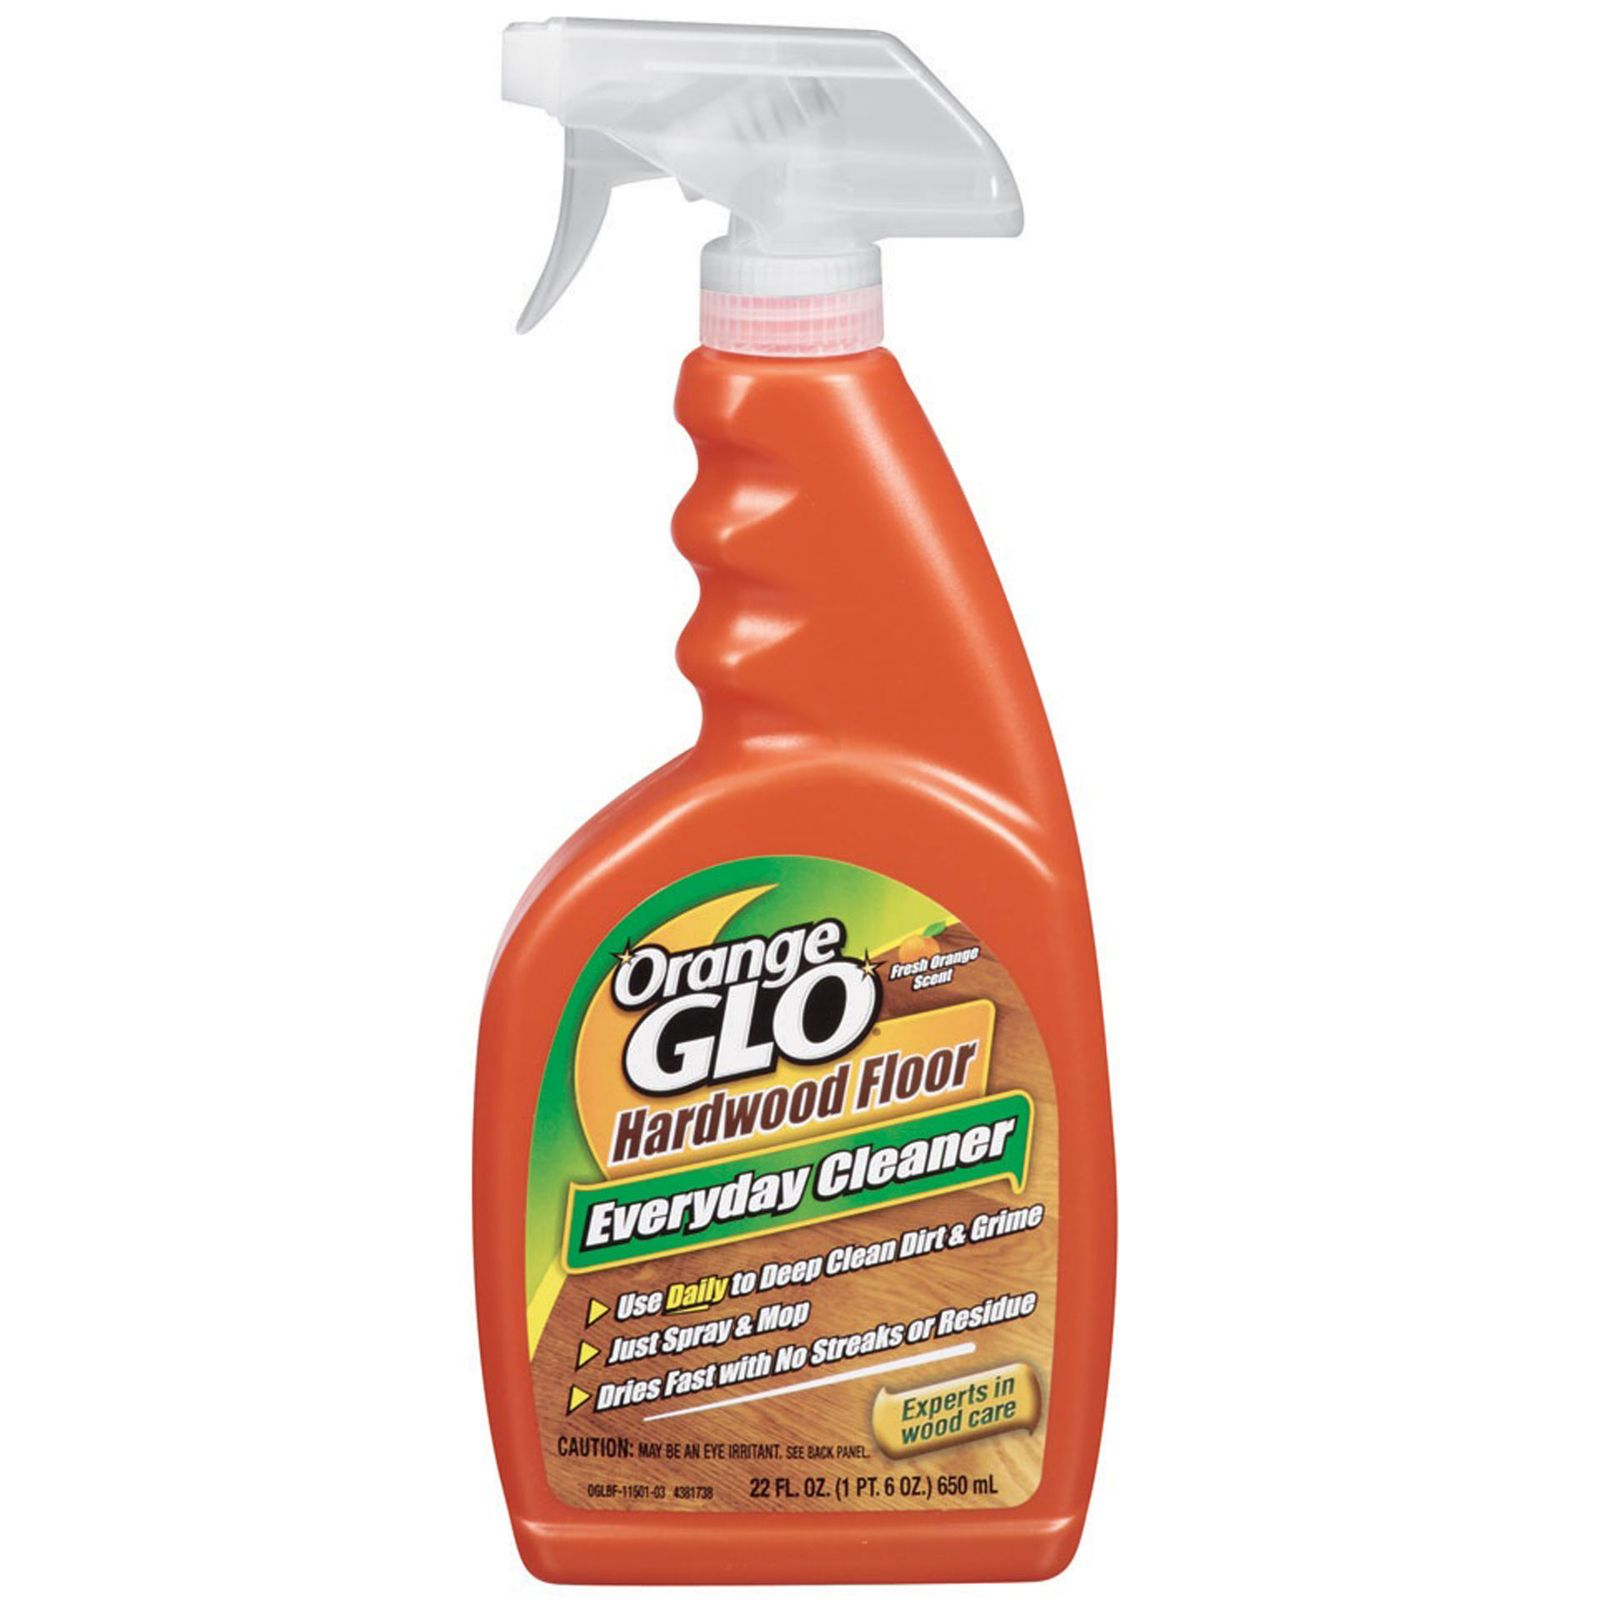 Orange glo hardwood floor everyday cleaner review for Floor cleaning